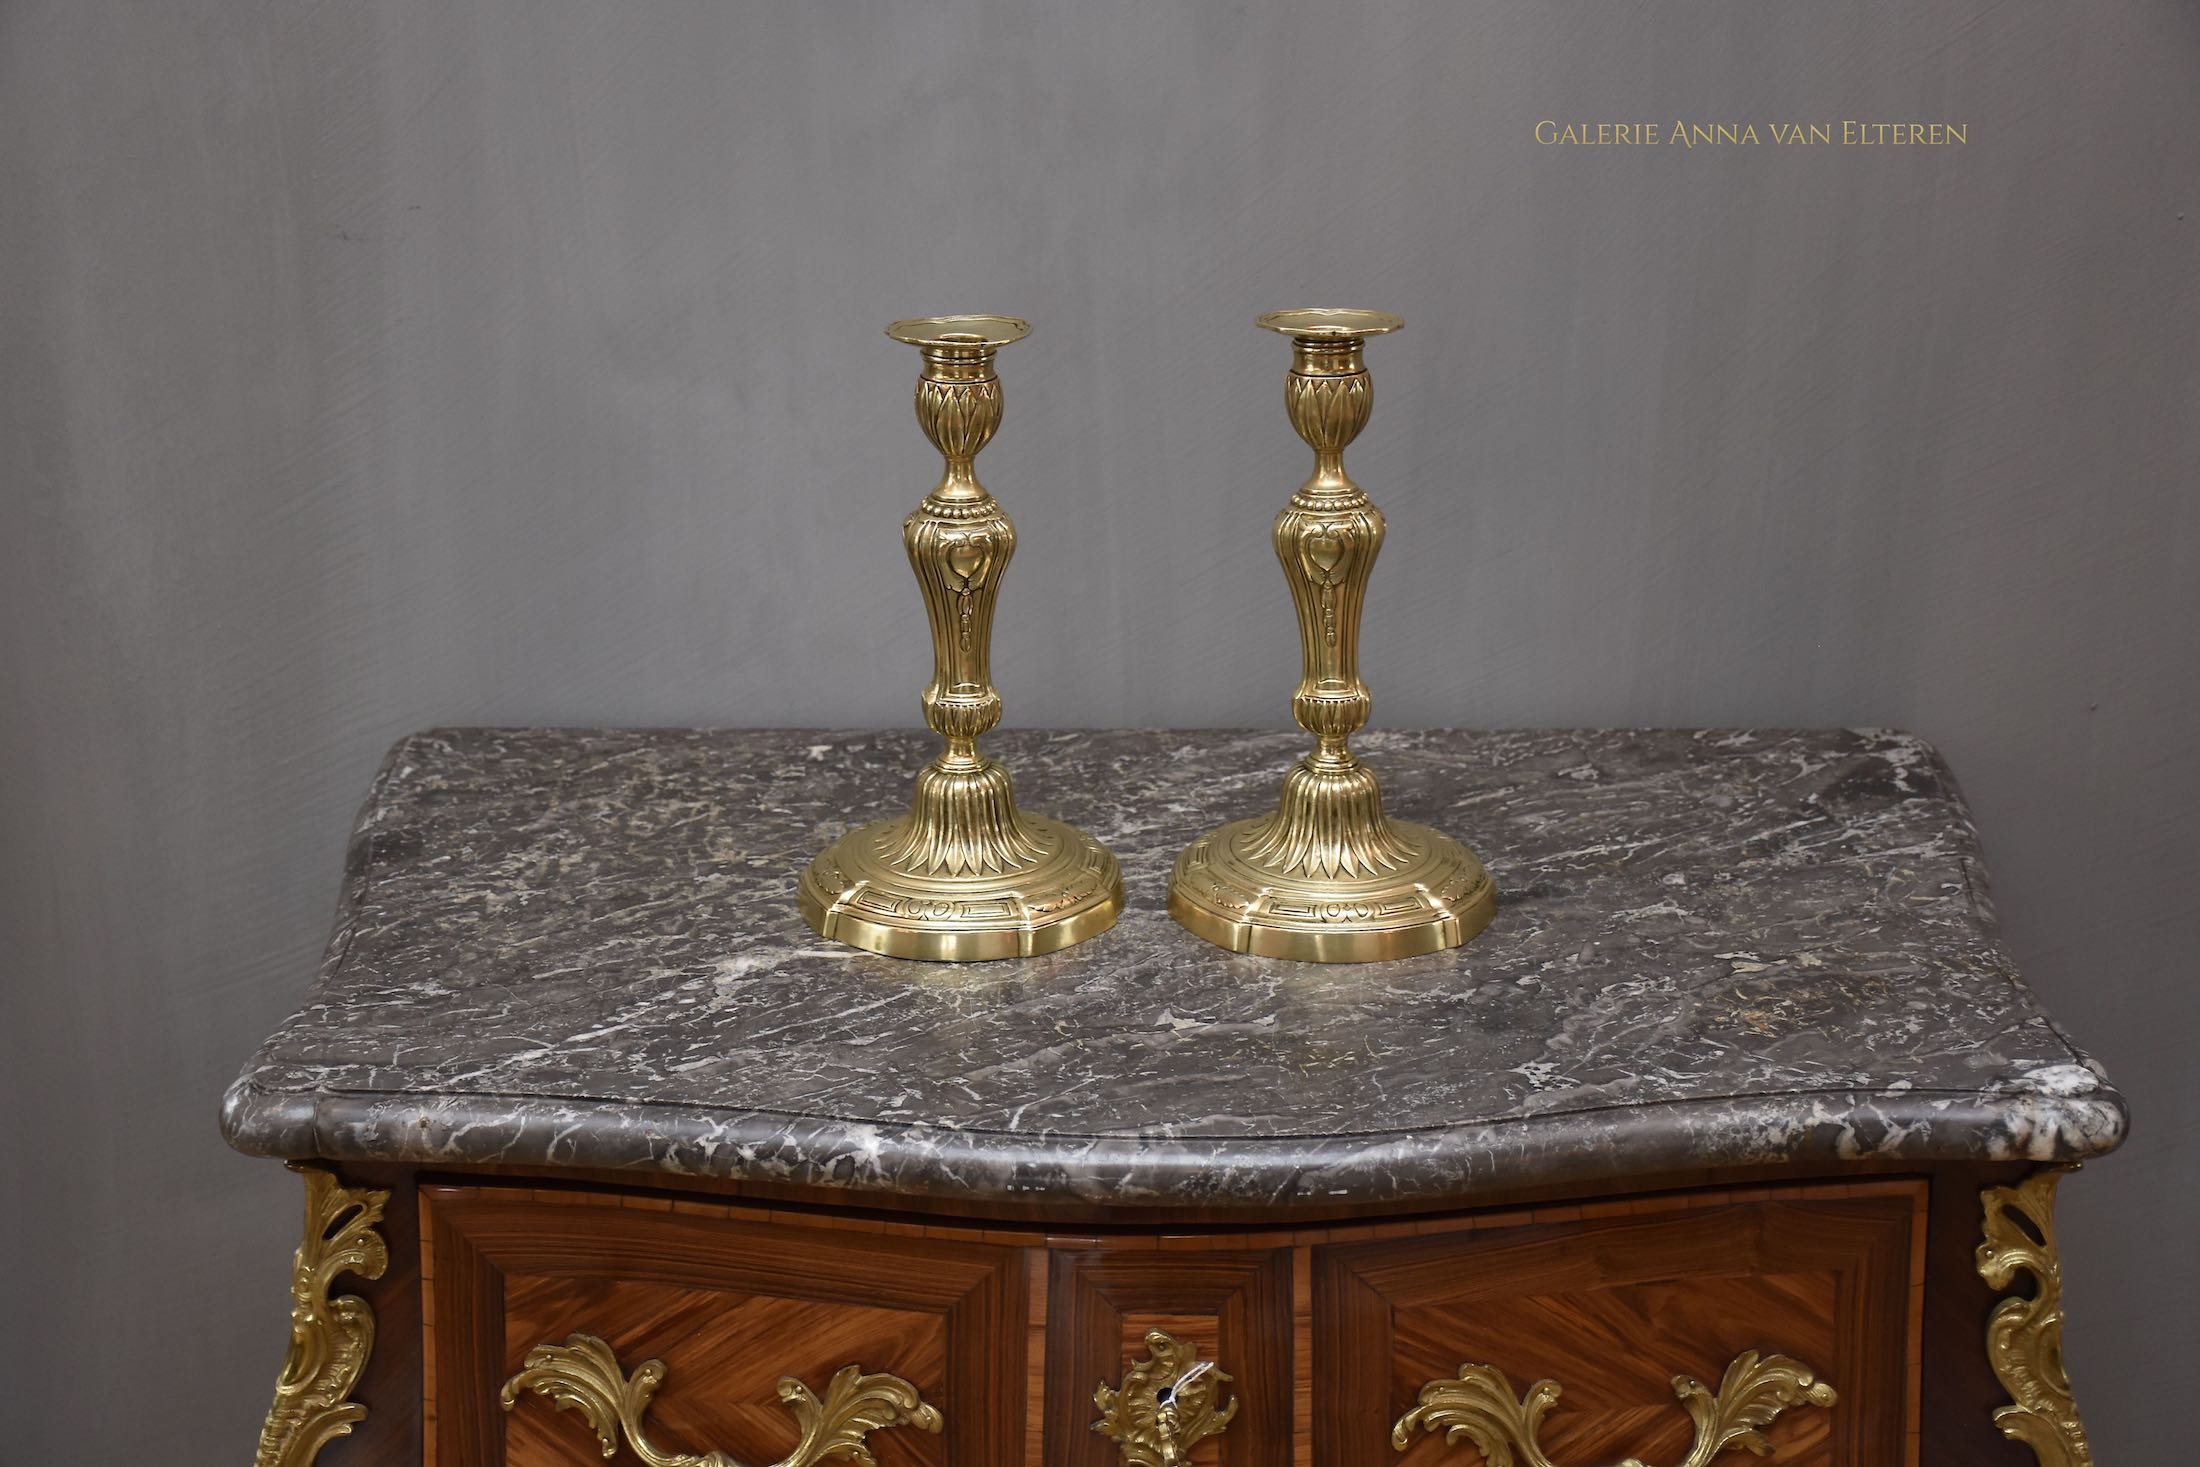 A pair of 18th c. French candlesticks Louis XVI